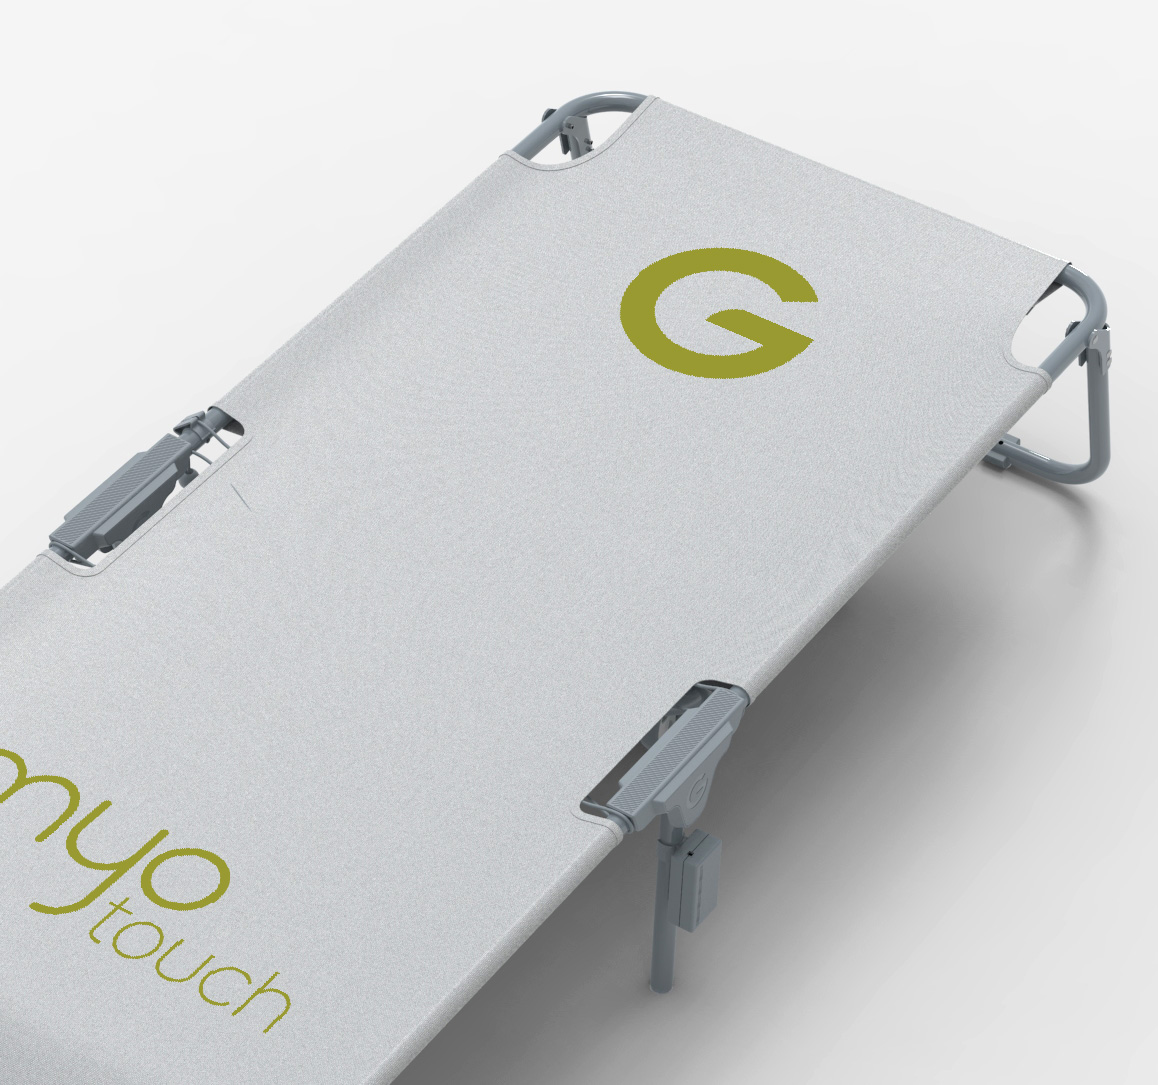 Gtech MYO Touch Massaging Bed Review